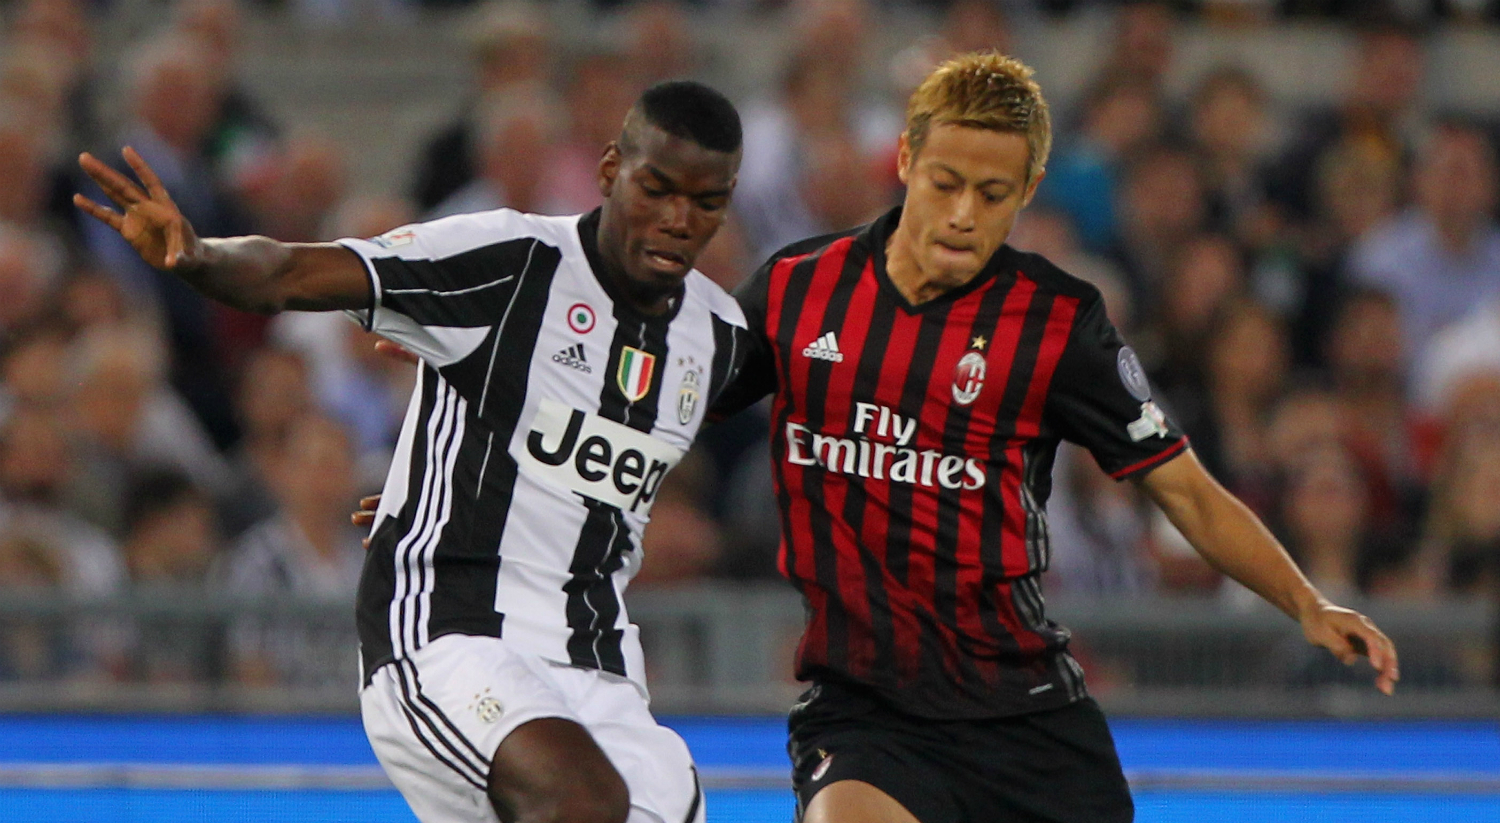 Pogba and Honda